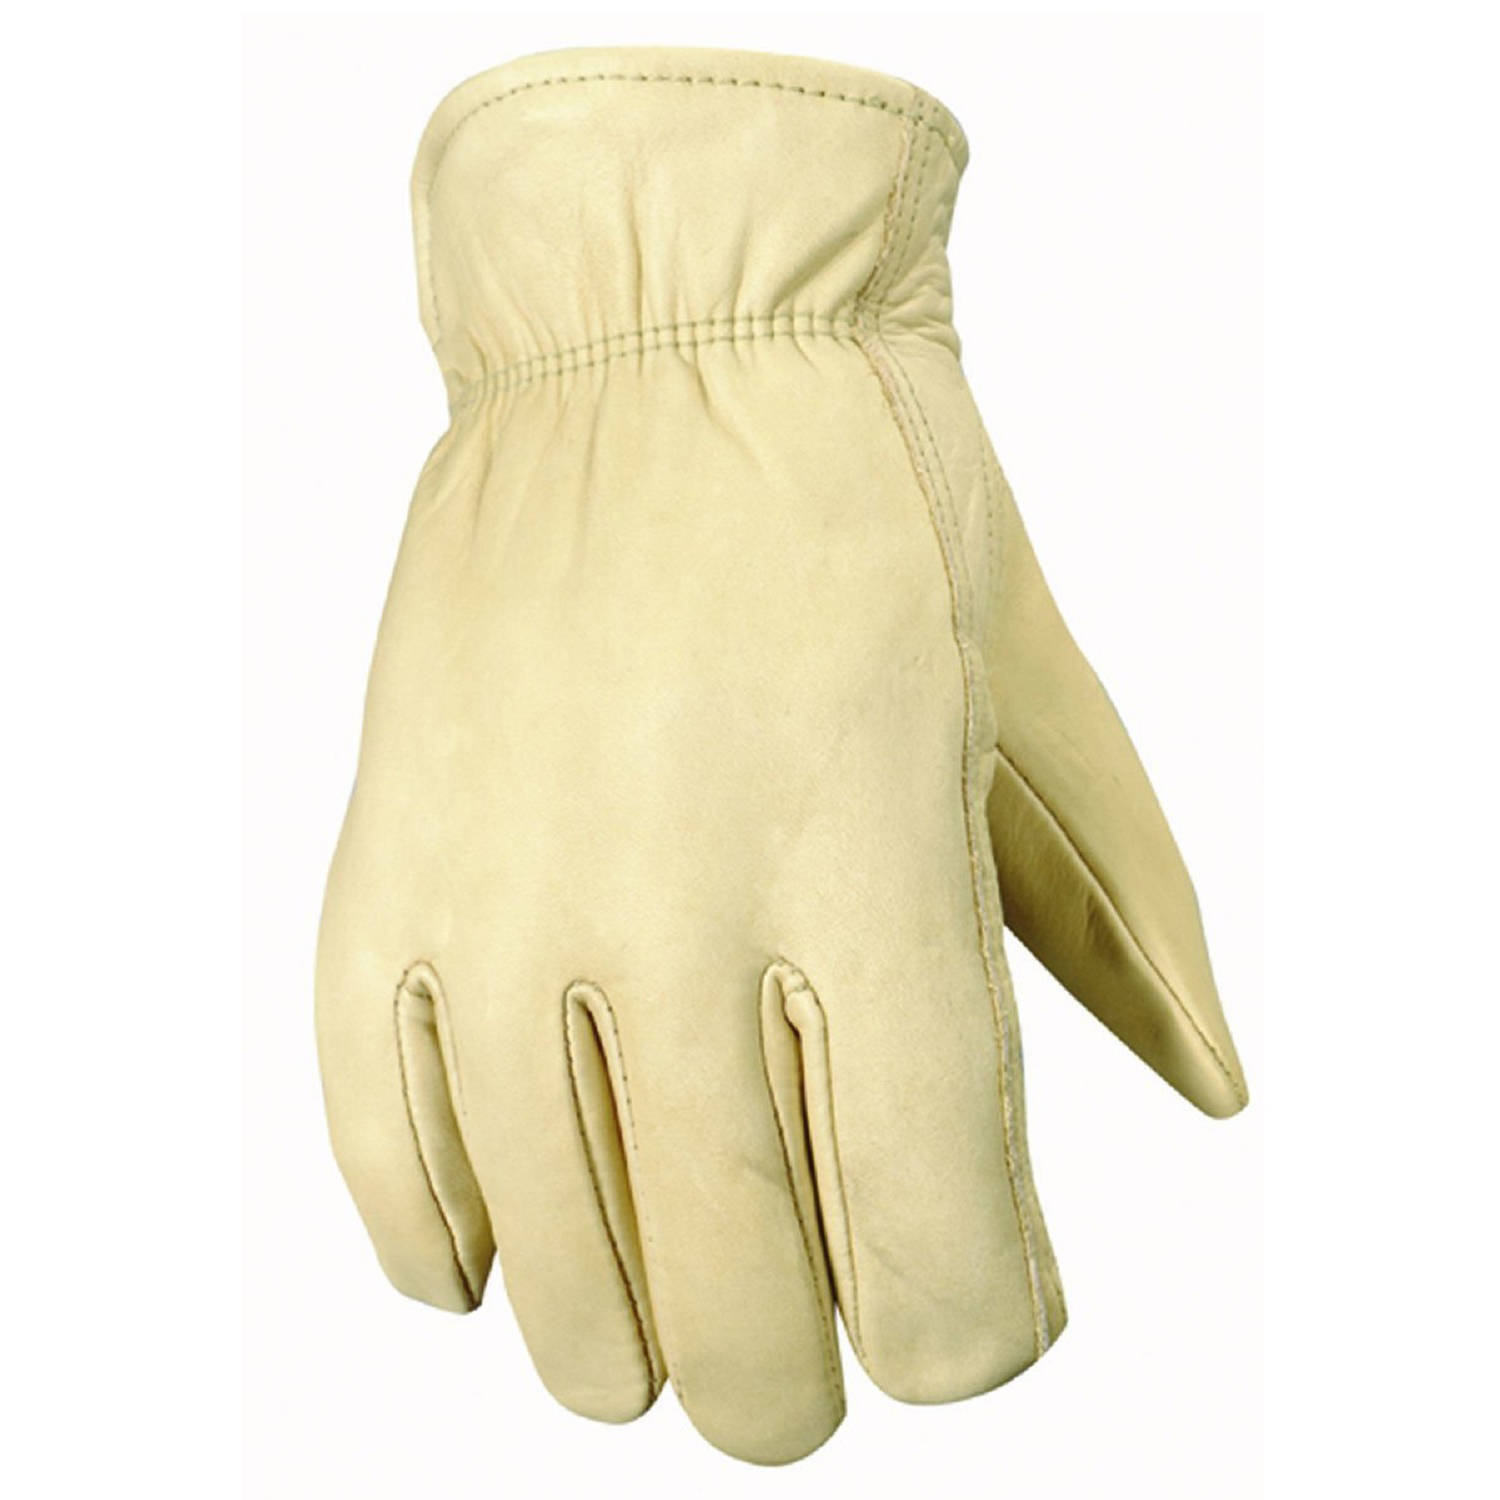 Wells Lamont Thinsulate Lined Leather Cowhide Work Gloves by Wells Lamont